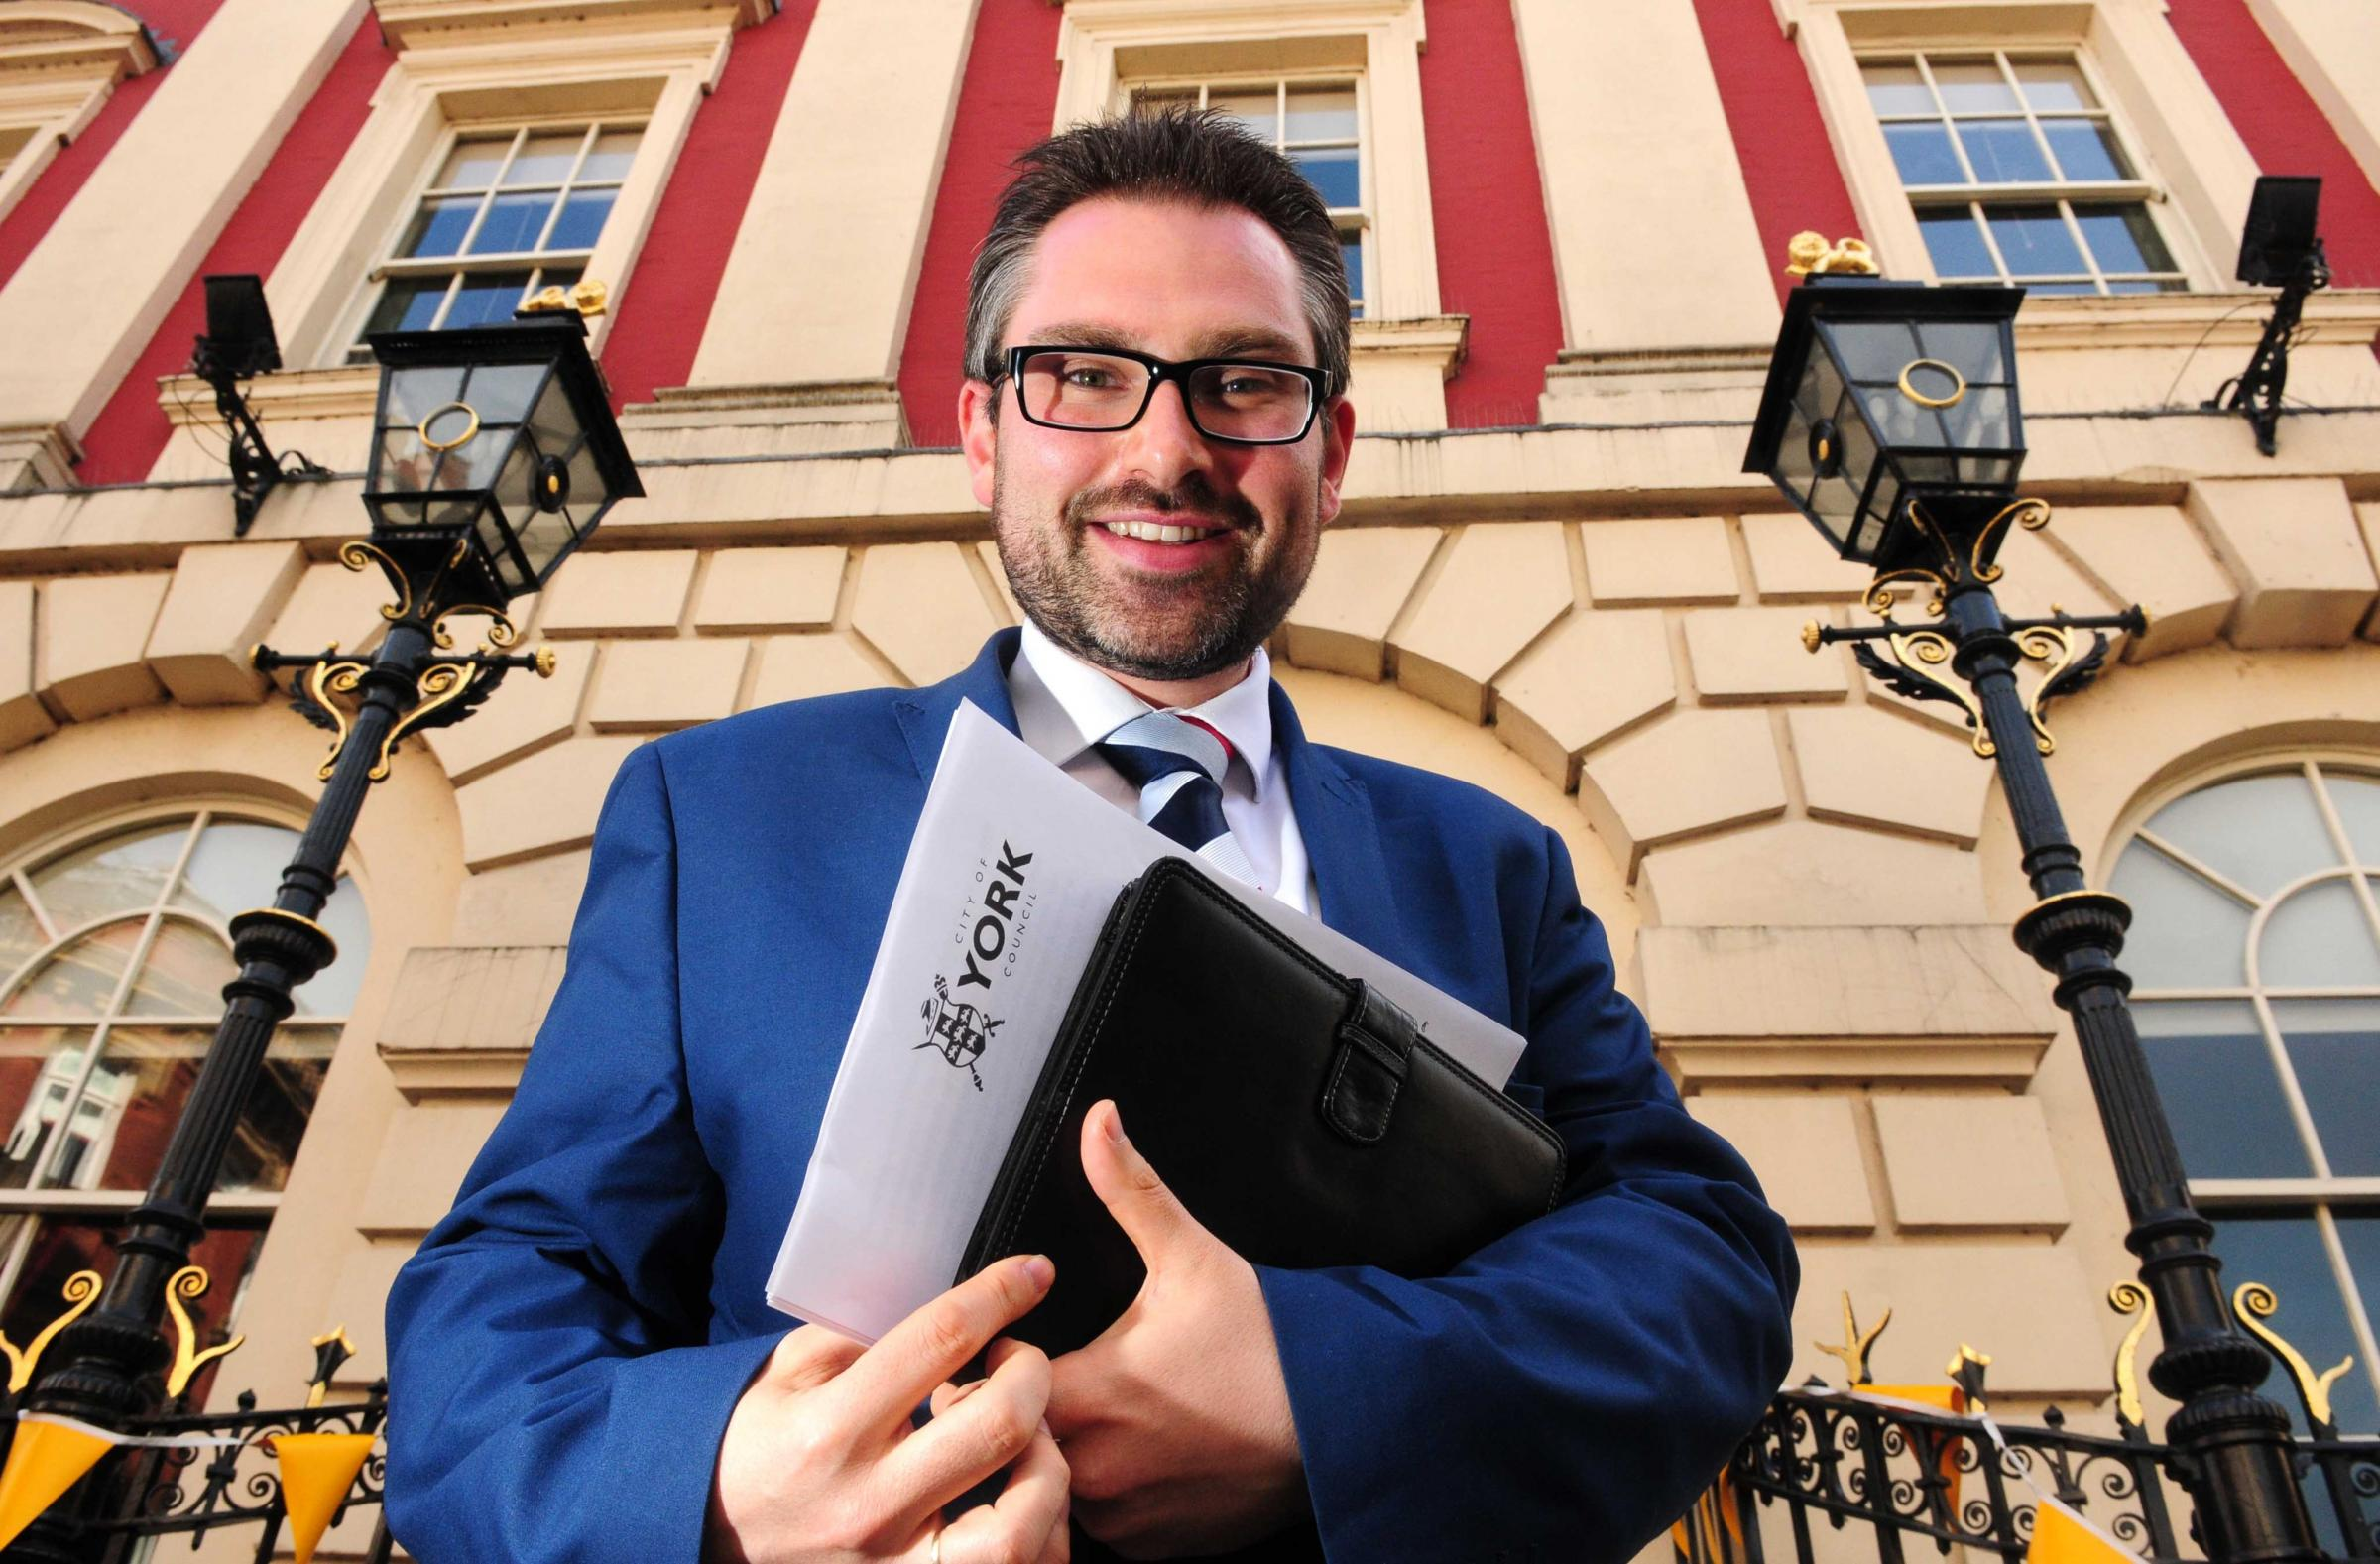 Coun James Alexander pictured ahead of his speach at The Mansion House.